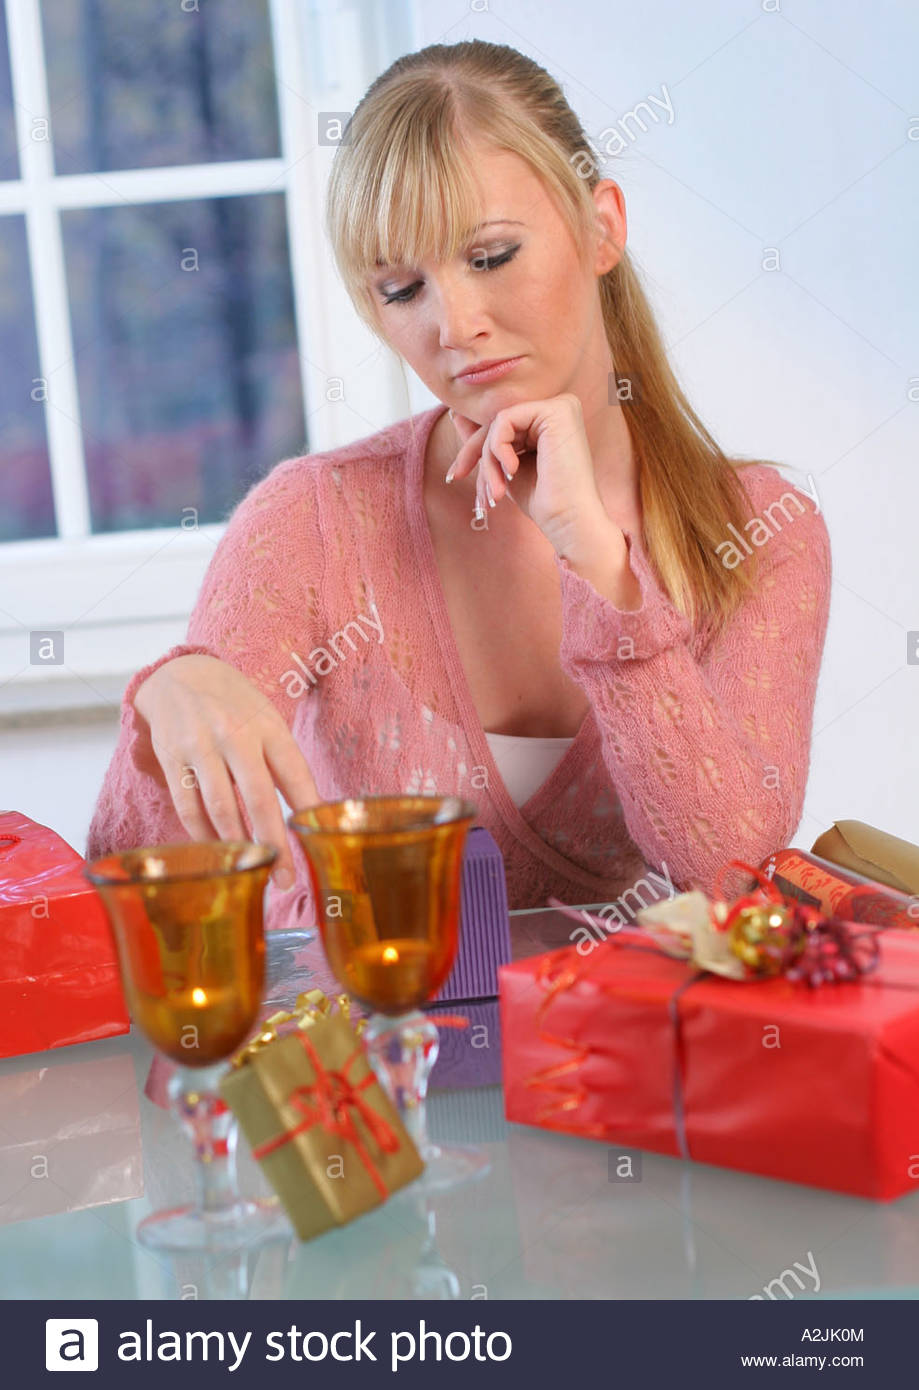 woman with gift - Stock Image